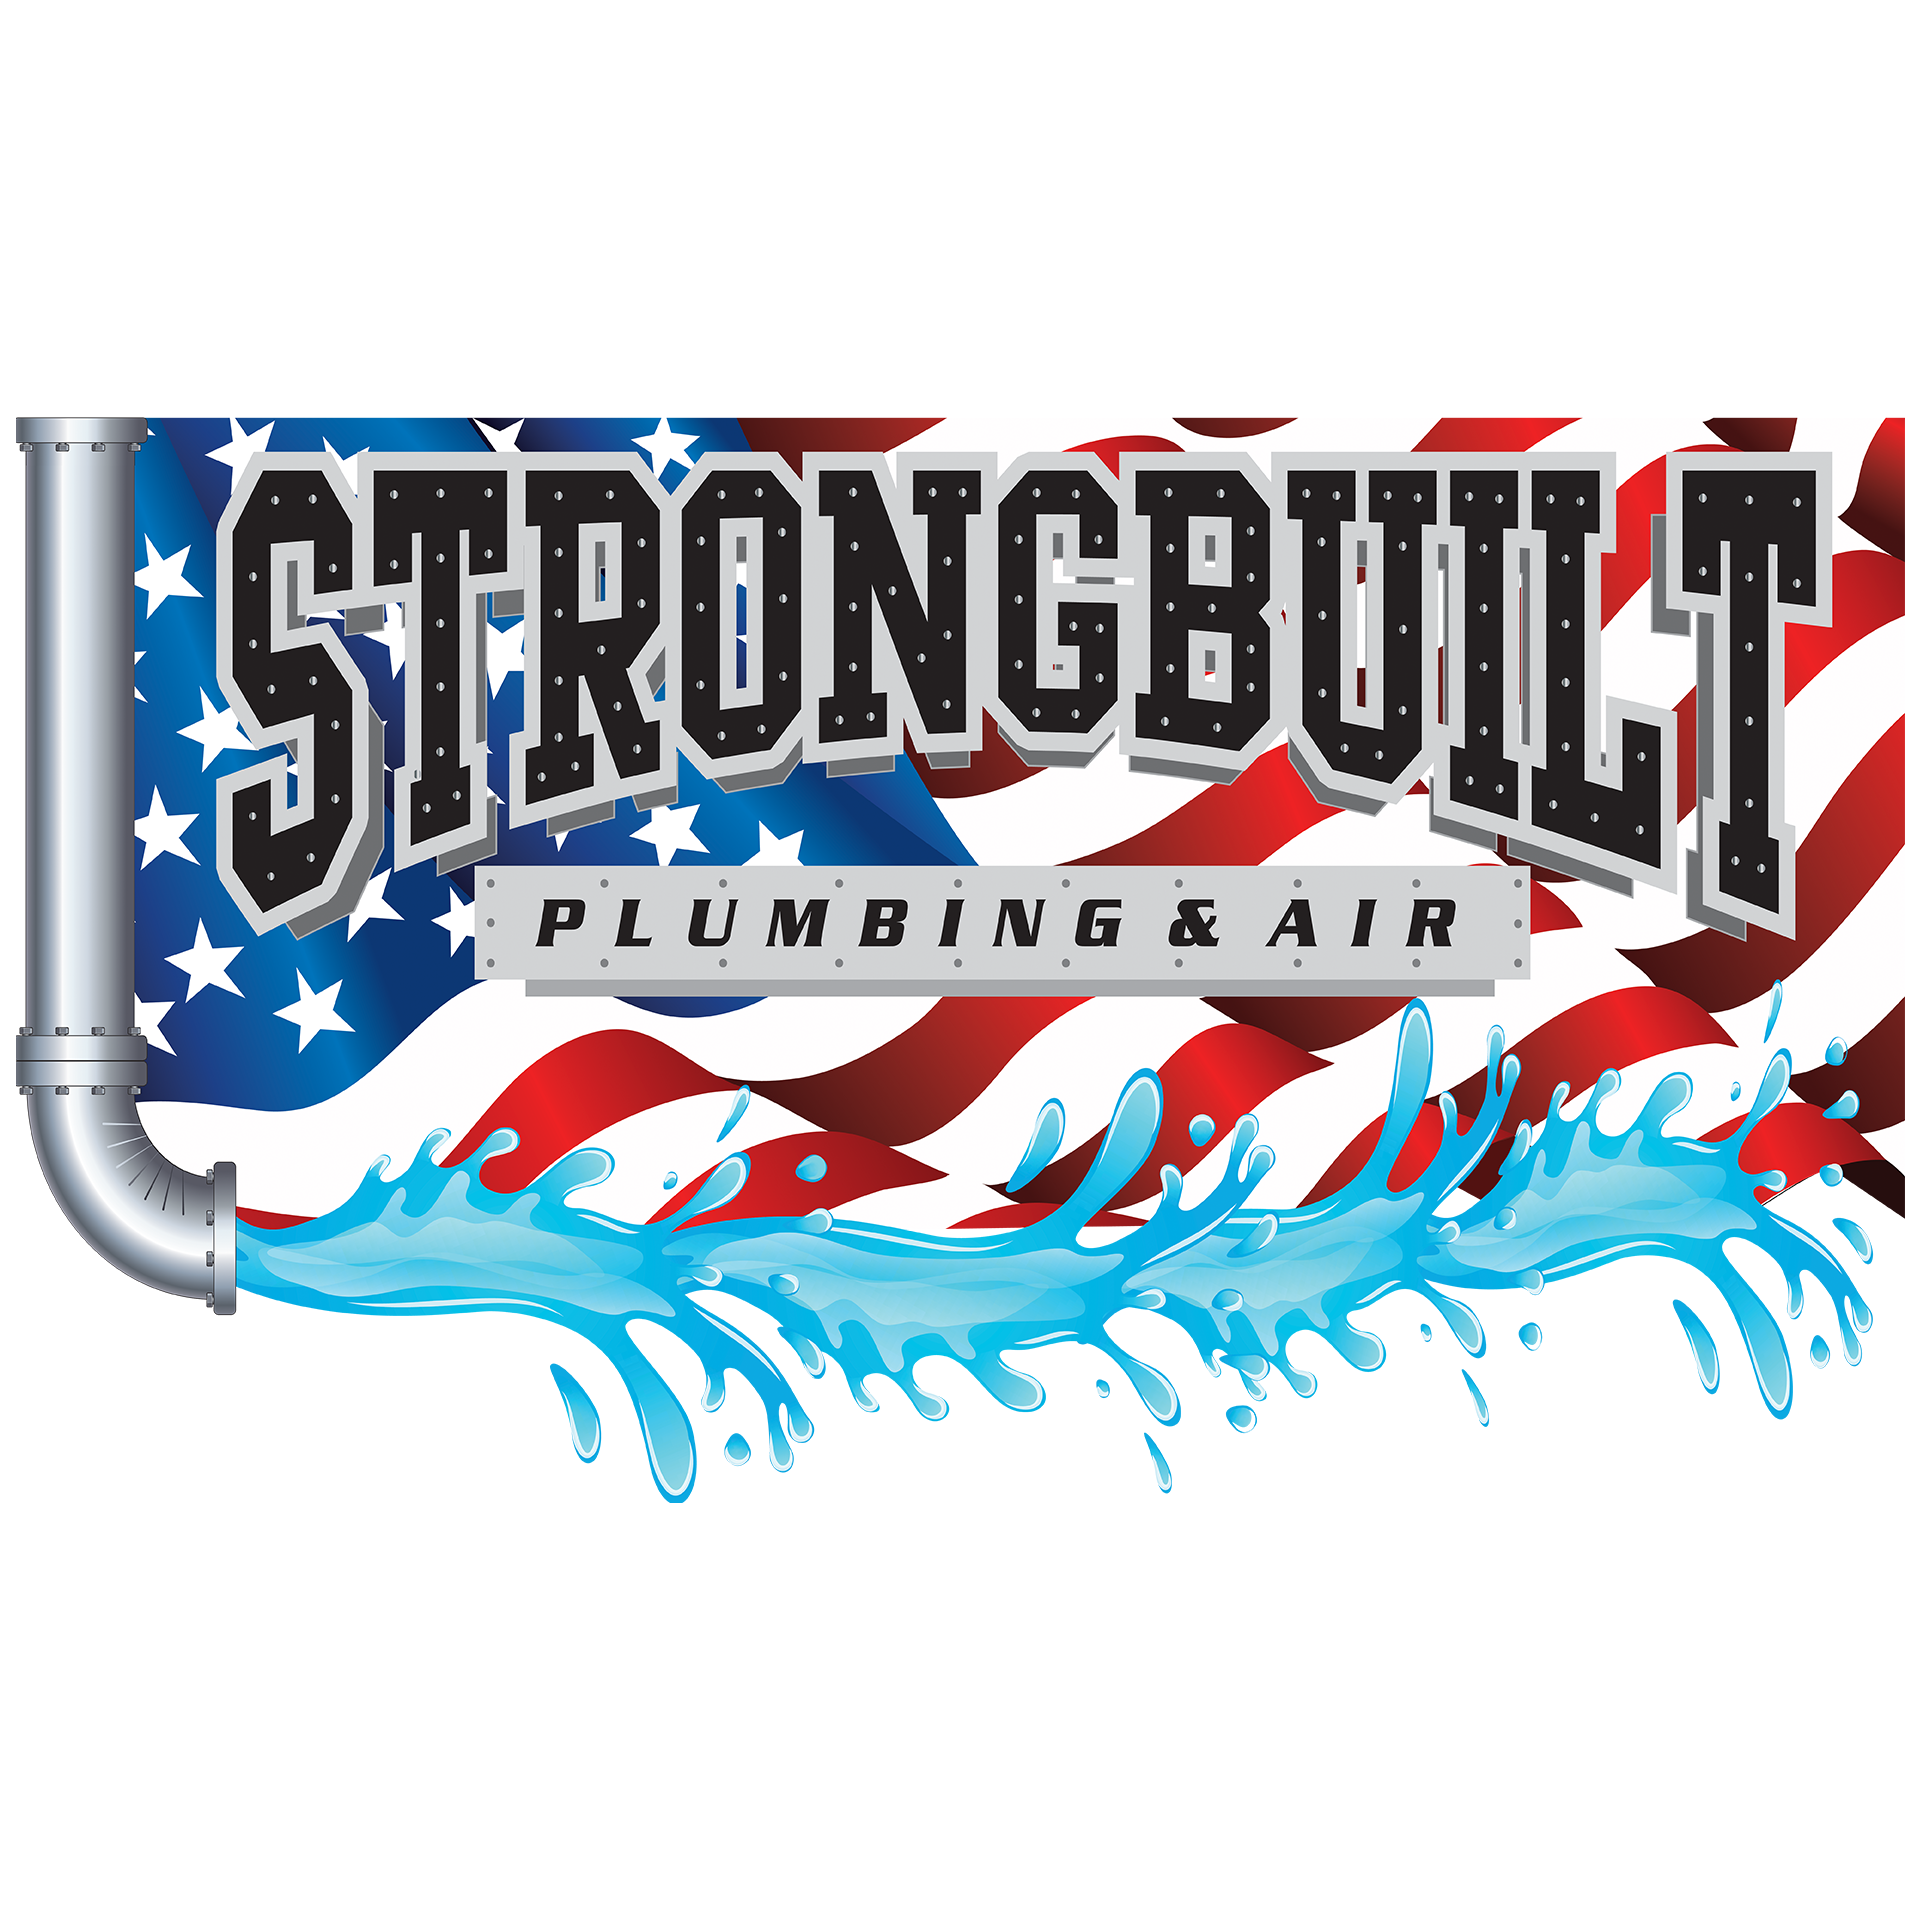 Strongbuilt Plumbing & Air